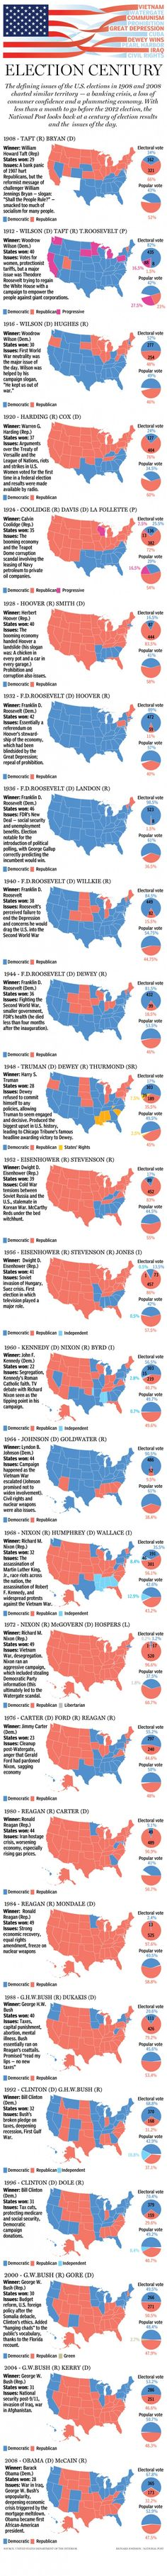 U.S. Elections from the past 100 years #Infographic #sschat #Election2012